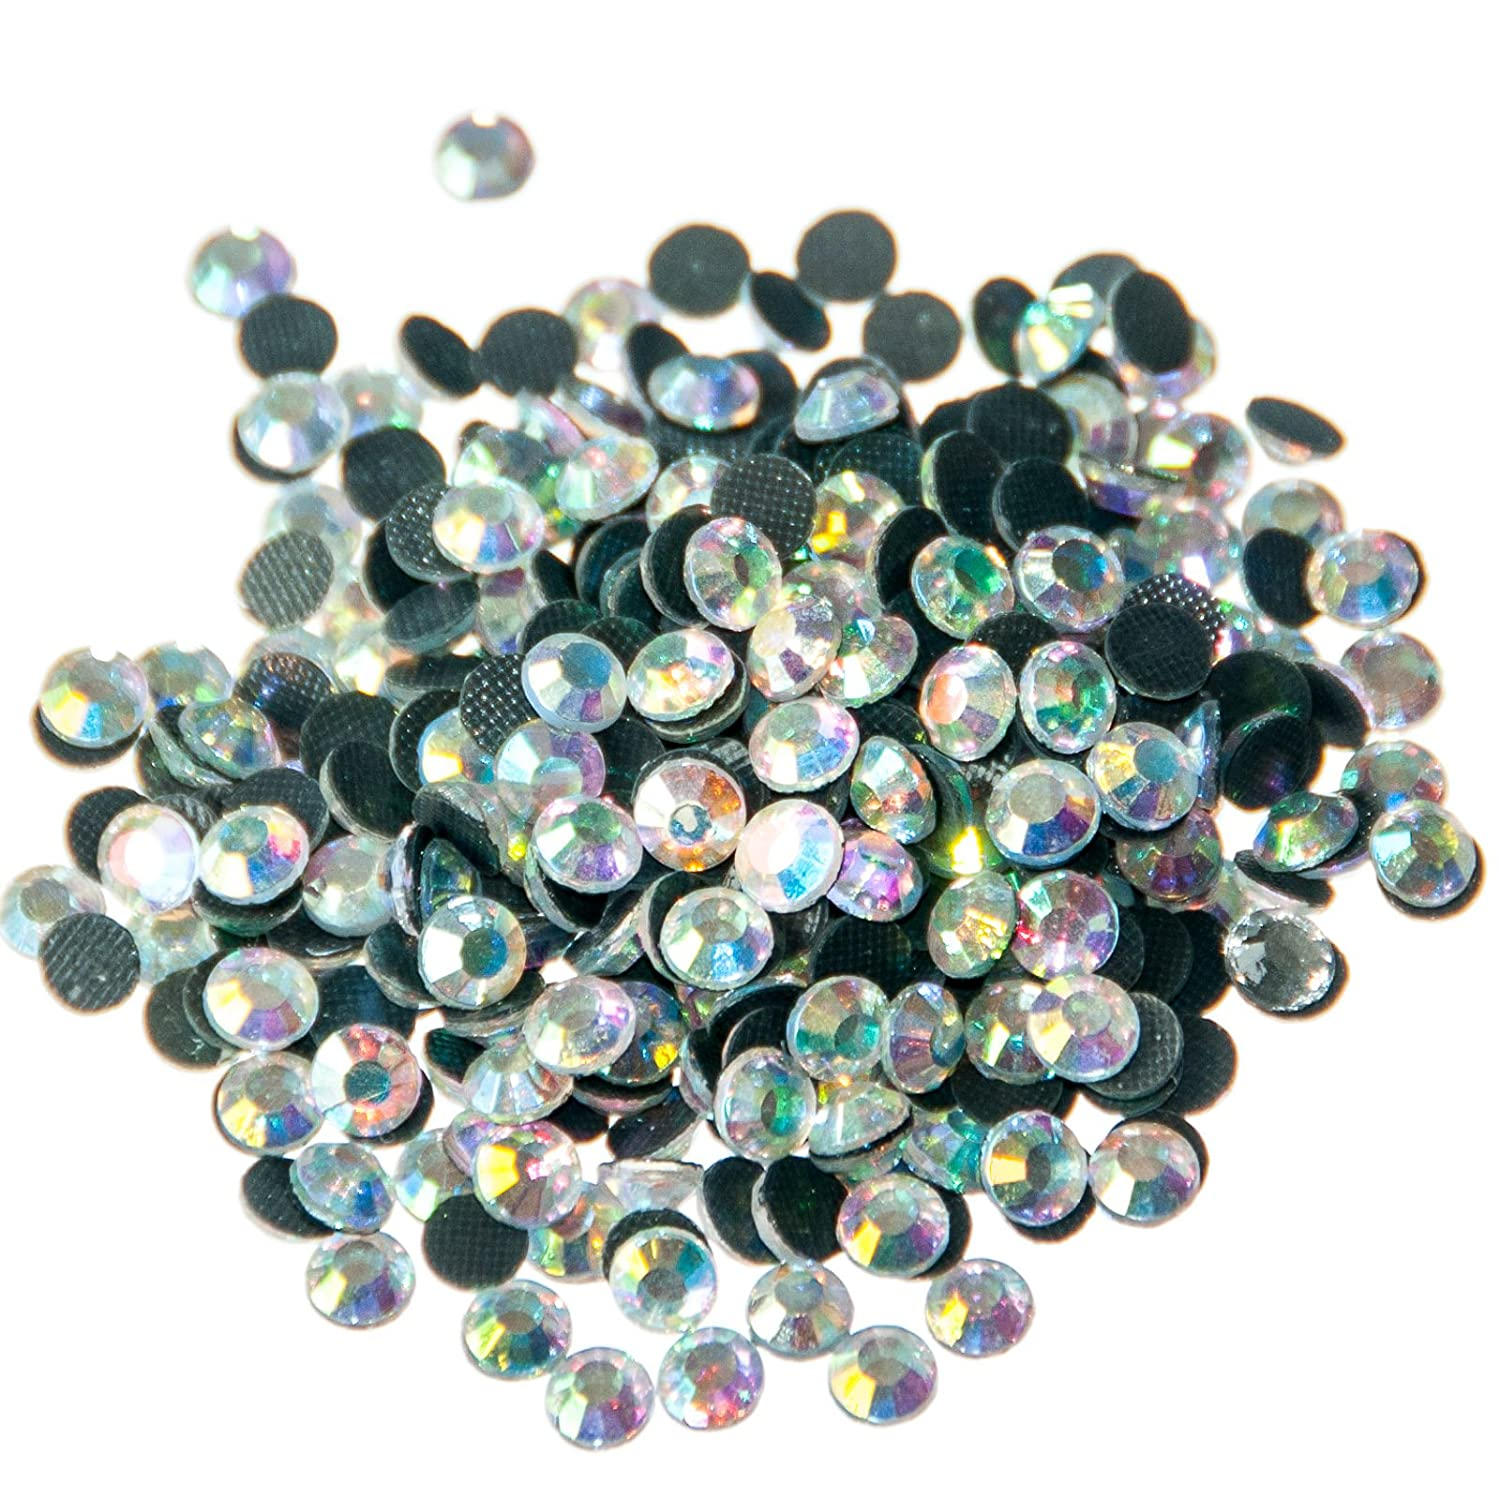 Pack of 500 x AA Grade Crystal AB Hotfix Rhinestone Diamante Gems Size SS20 (5mm) Busy Bead